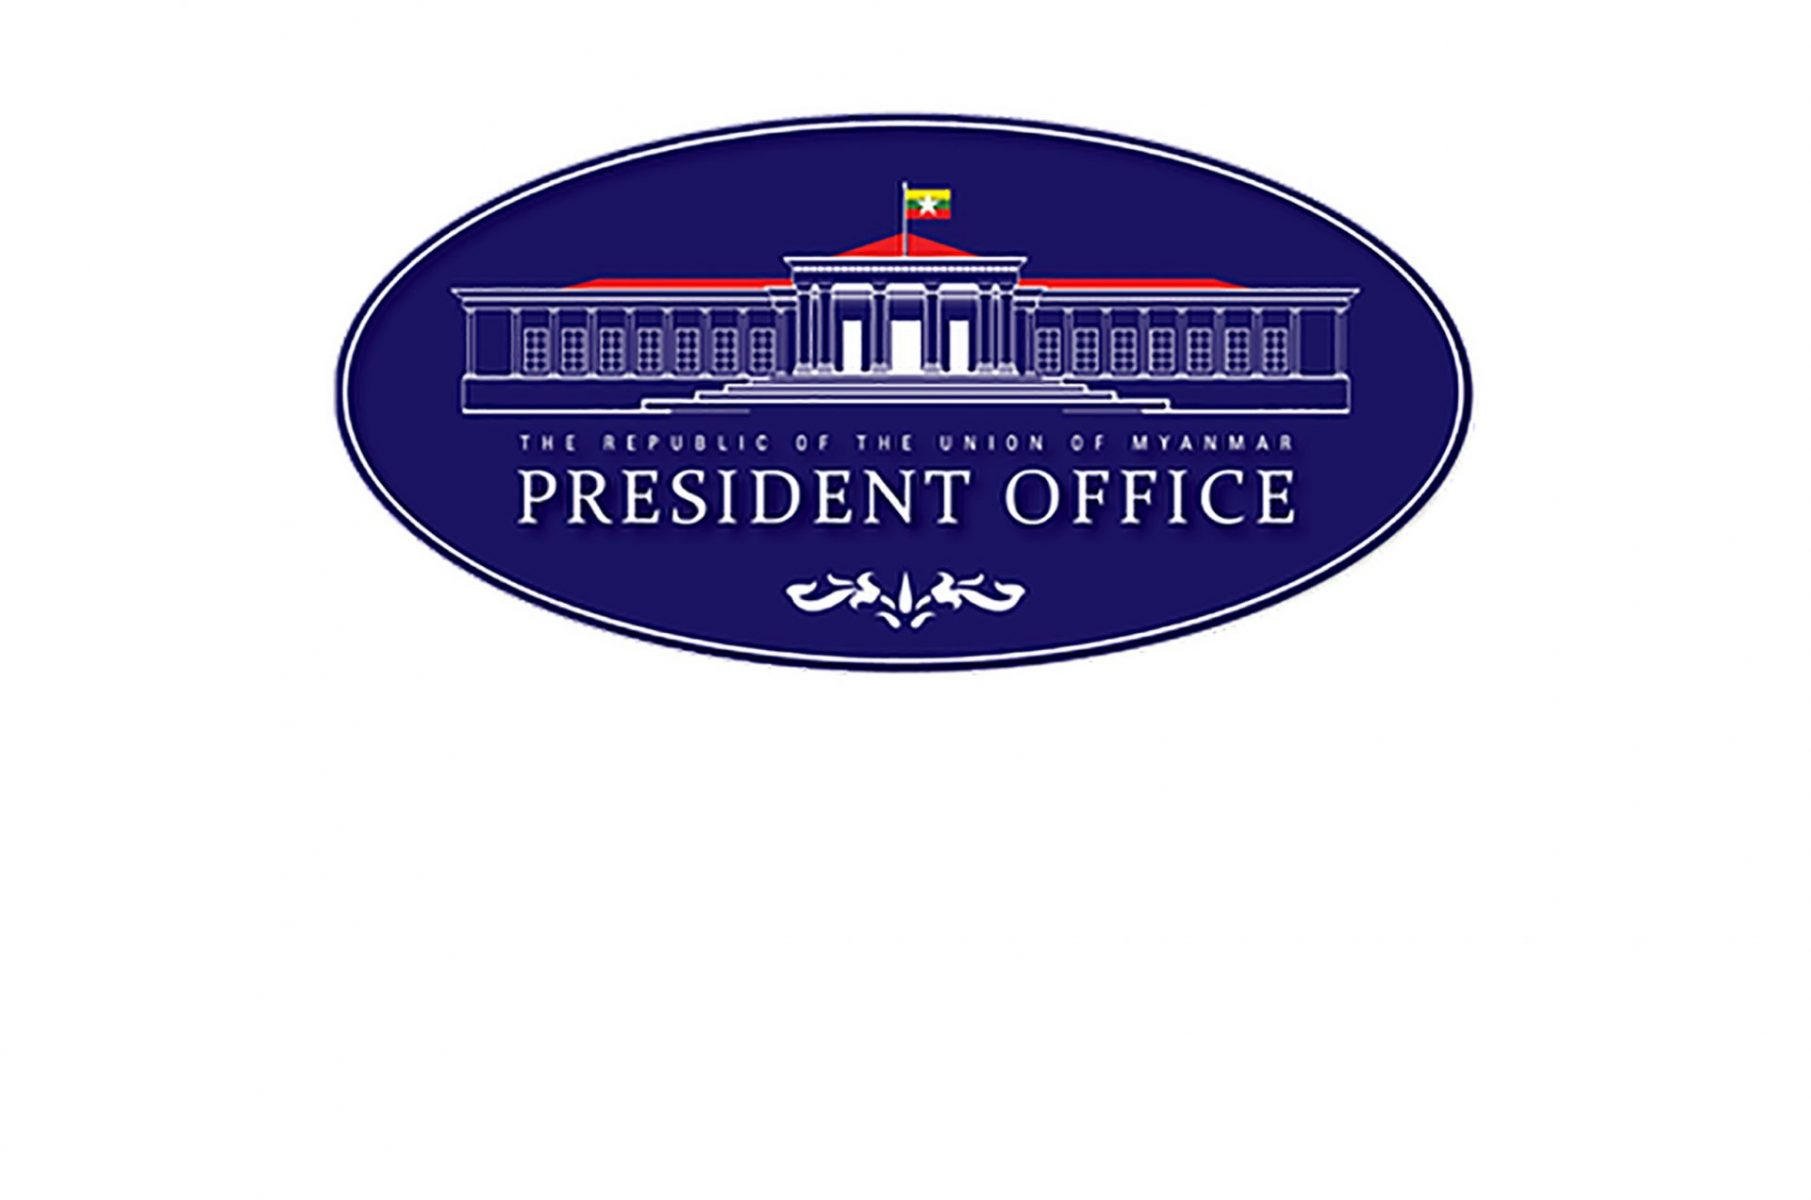 President Office feature scaled